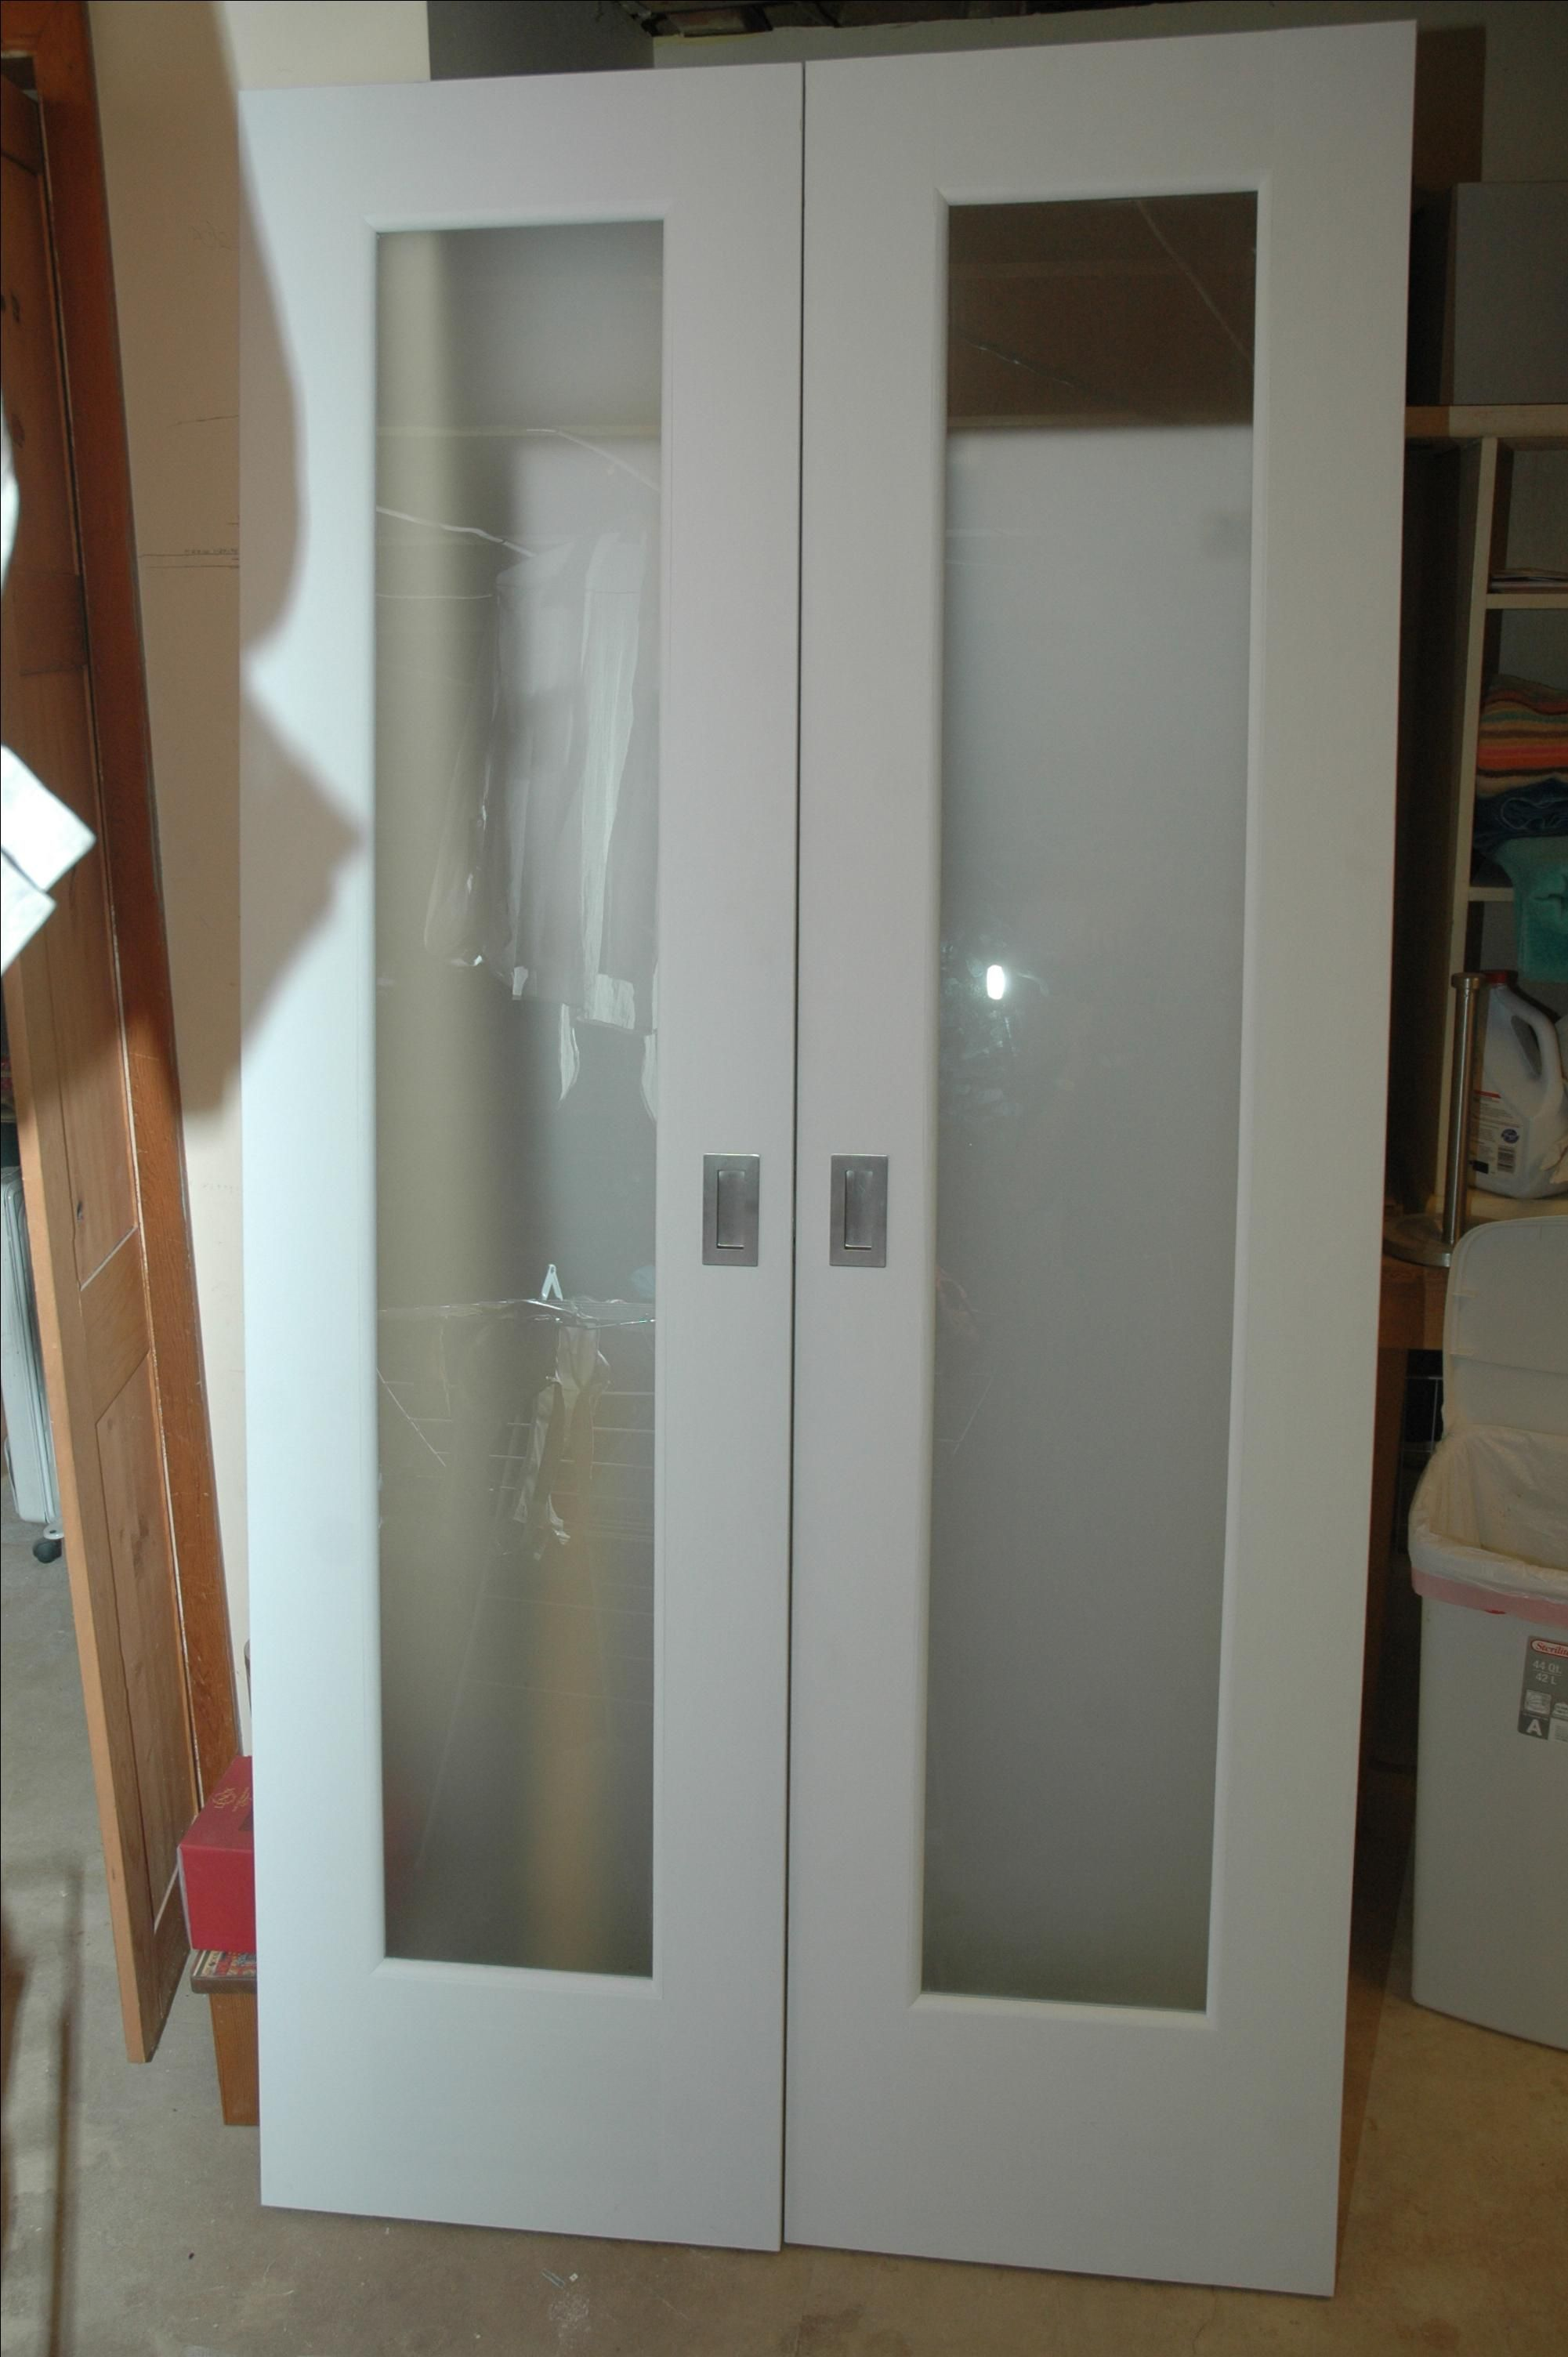 Kitchen Cabinet Doors With Frosted Glass Panels Handmade Closet Doors W Frosted Glass Panels By Wooden It